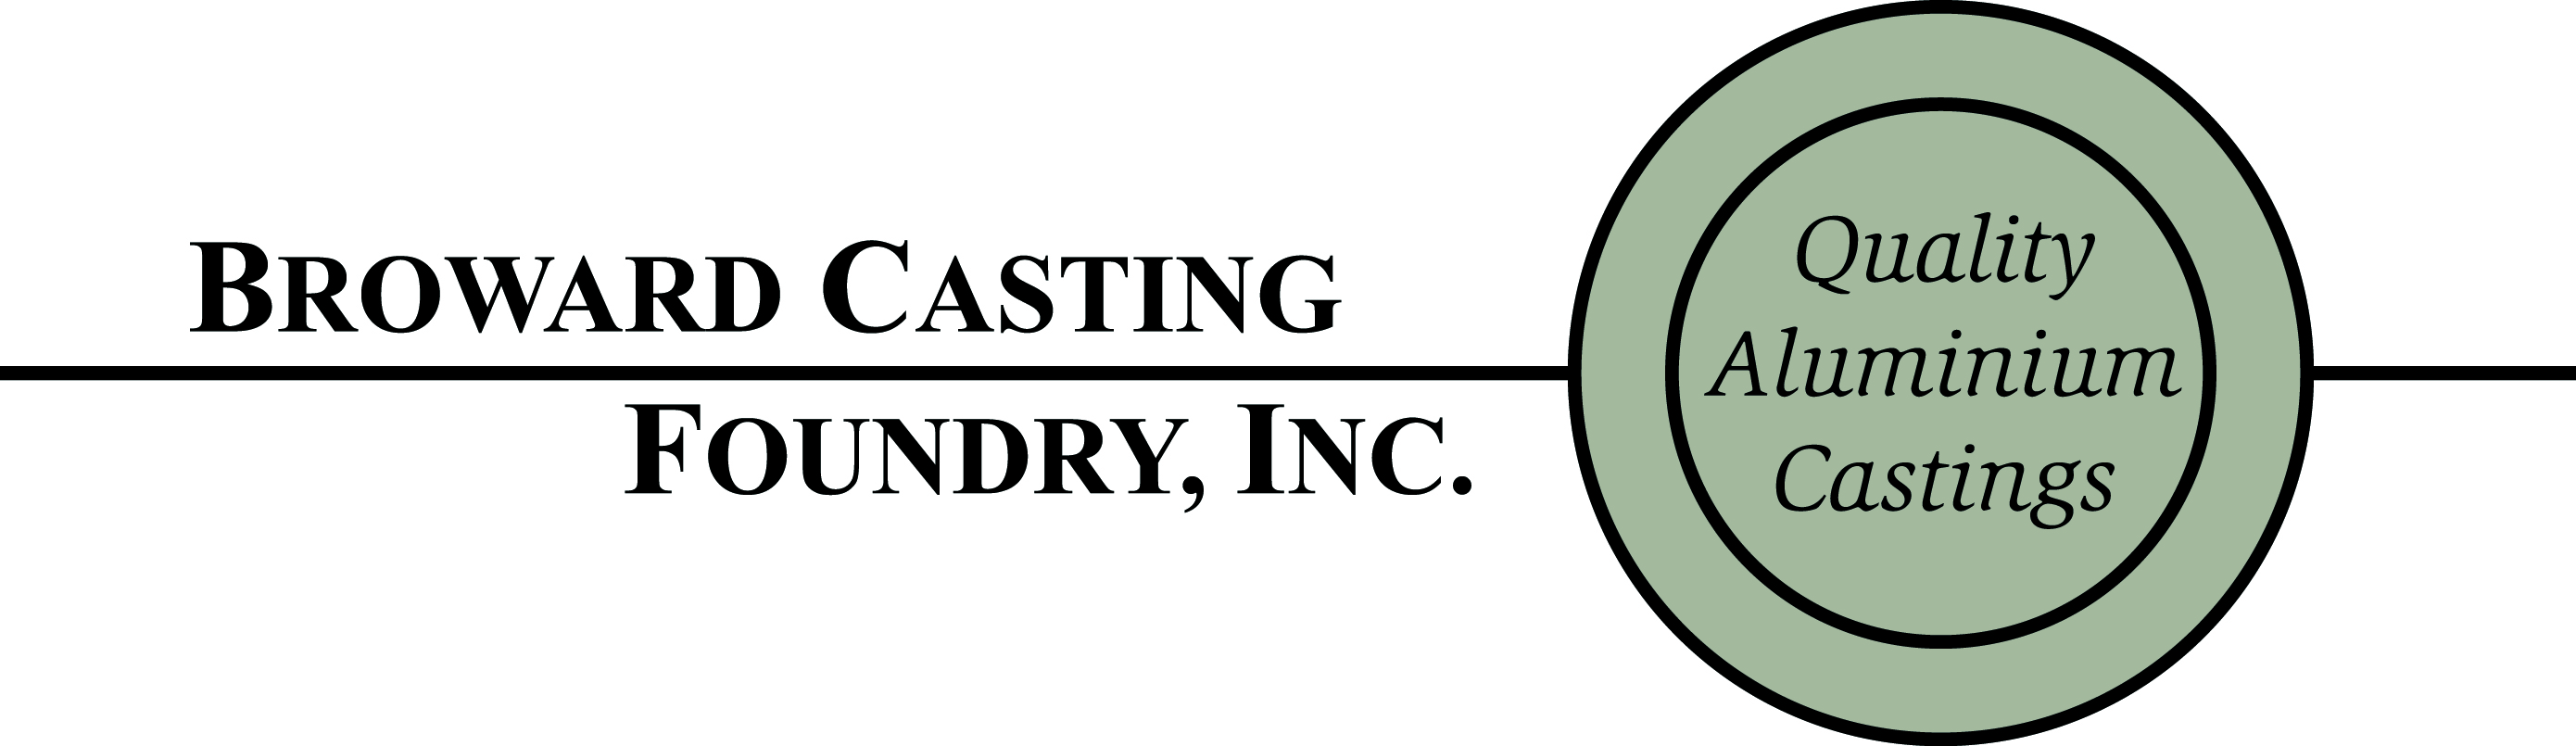 BROWARD CASTING FOUNDRY